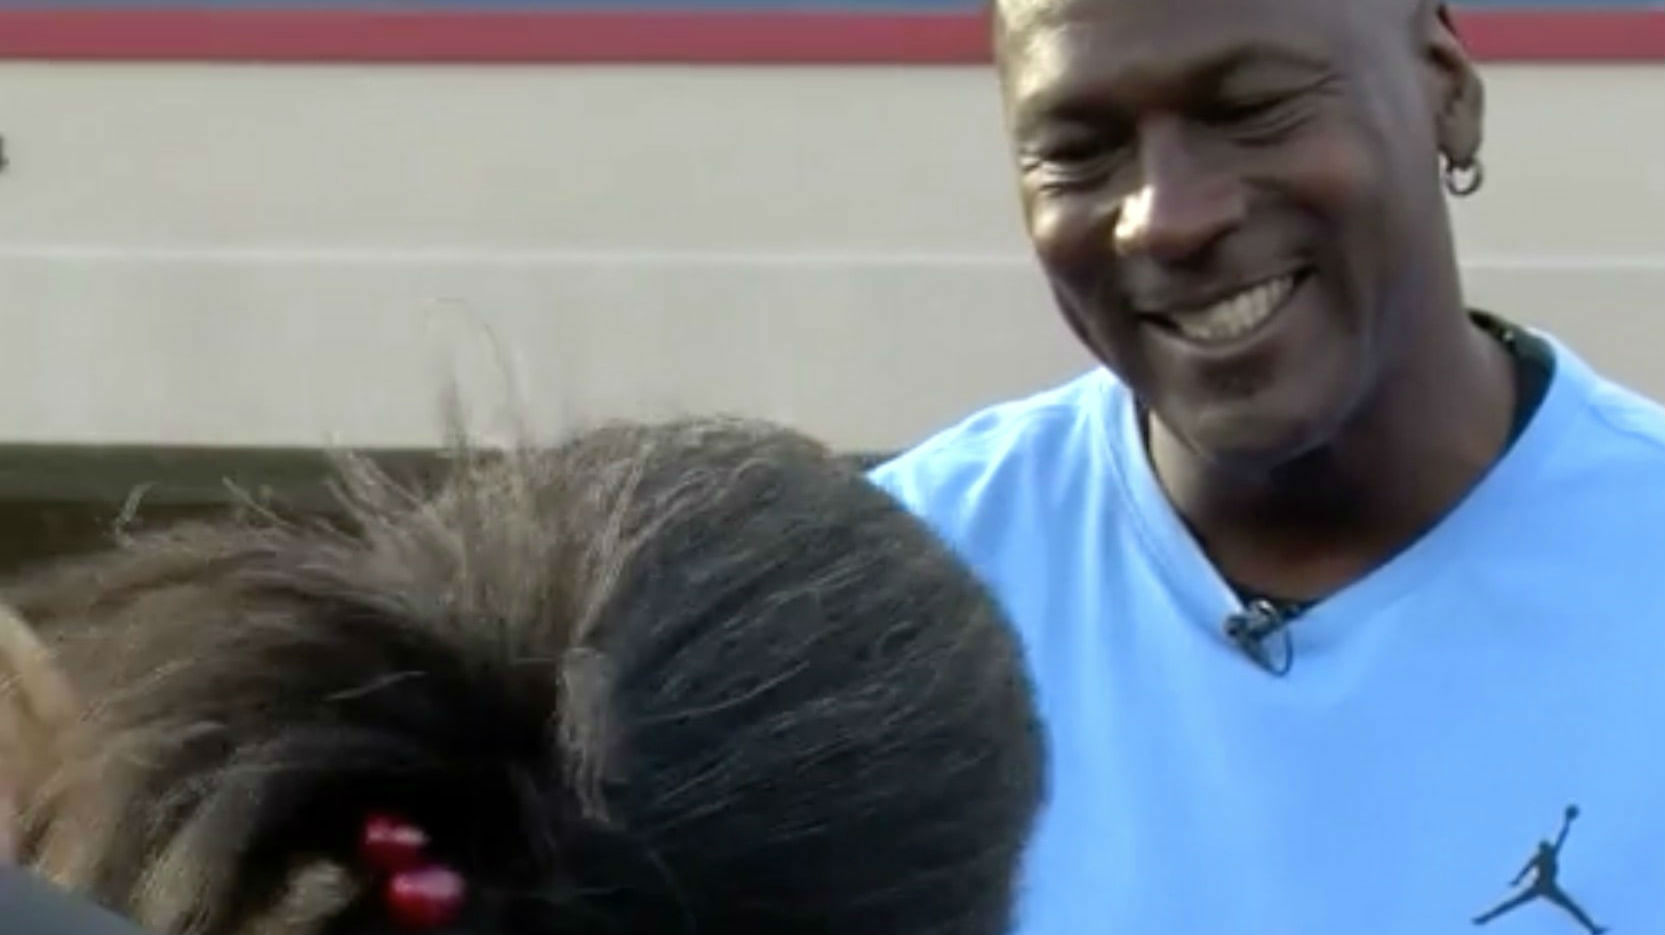 new arrival 24bc3 315e5 Michael Jordan Hands Out Thanksgiving Meals To Hurricane Florence Victims.  The hall of famer also gave out pairs of his signature shoe to children at  the ...